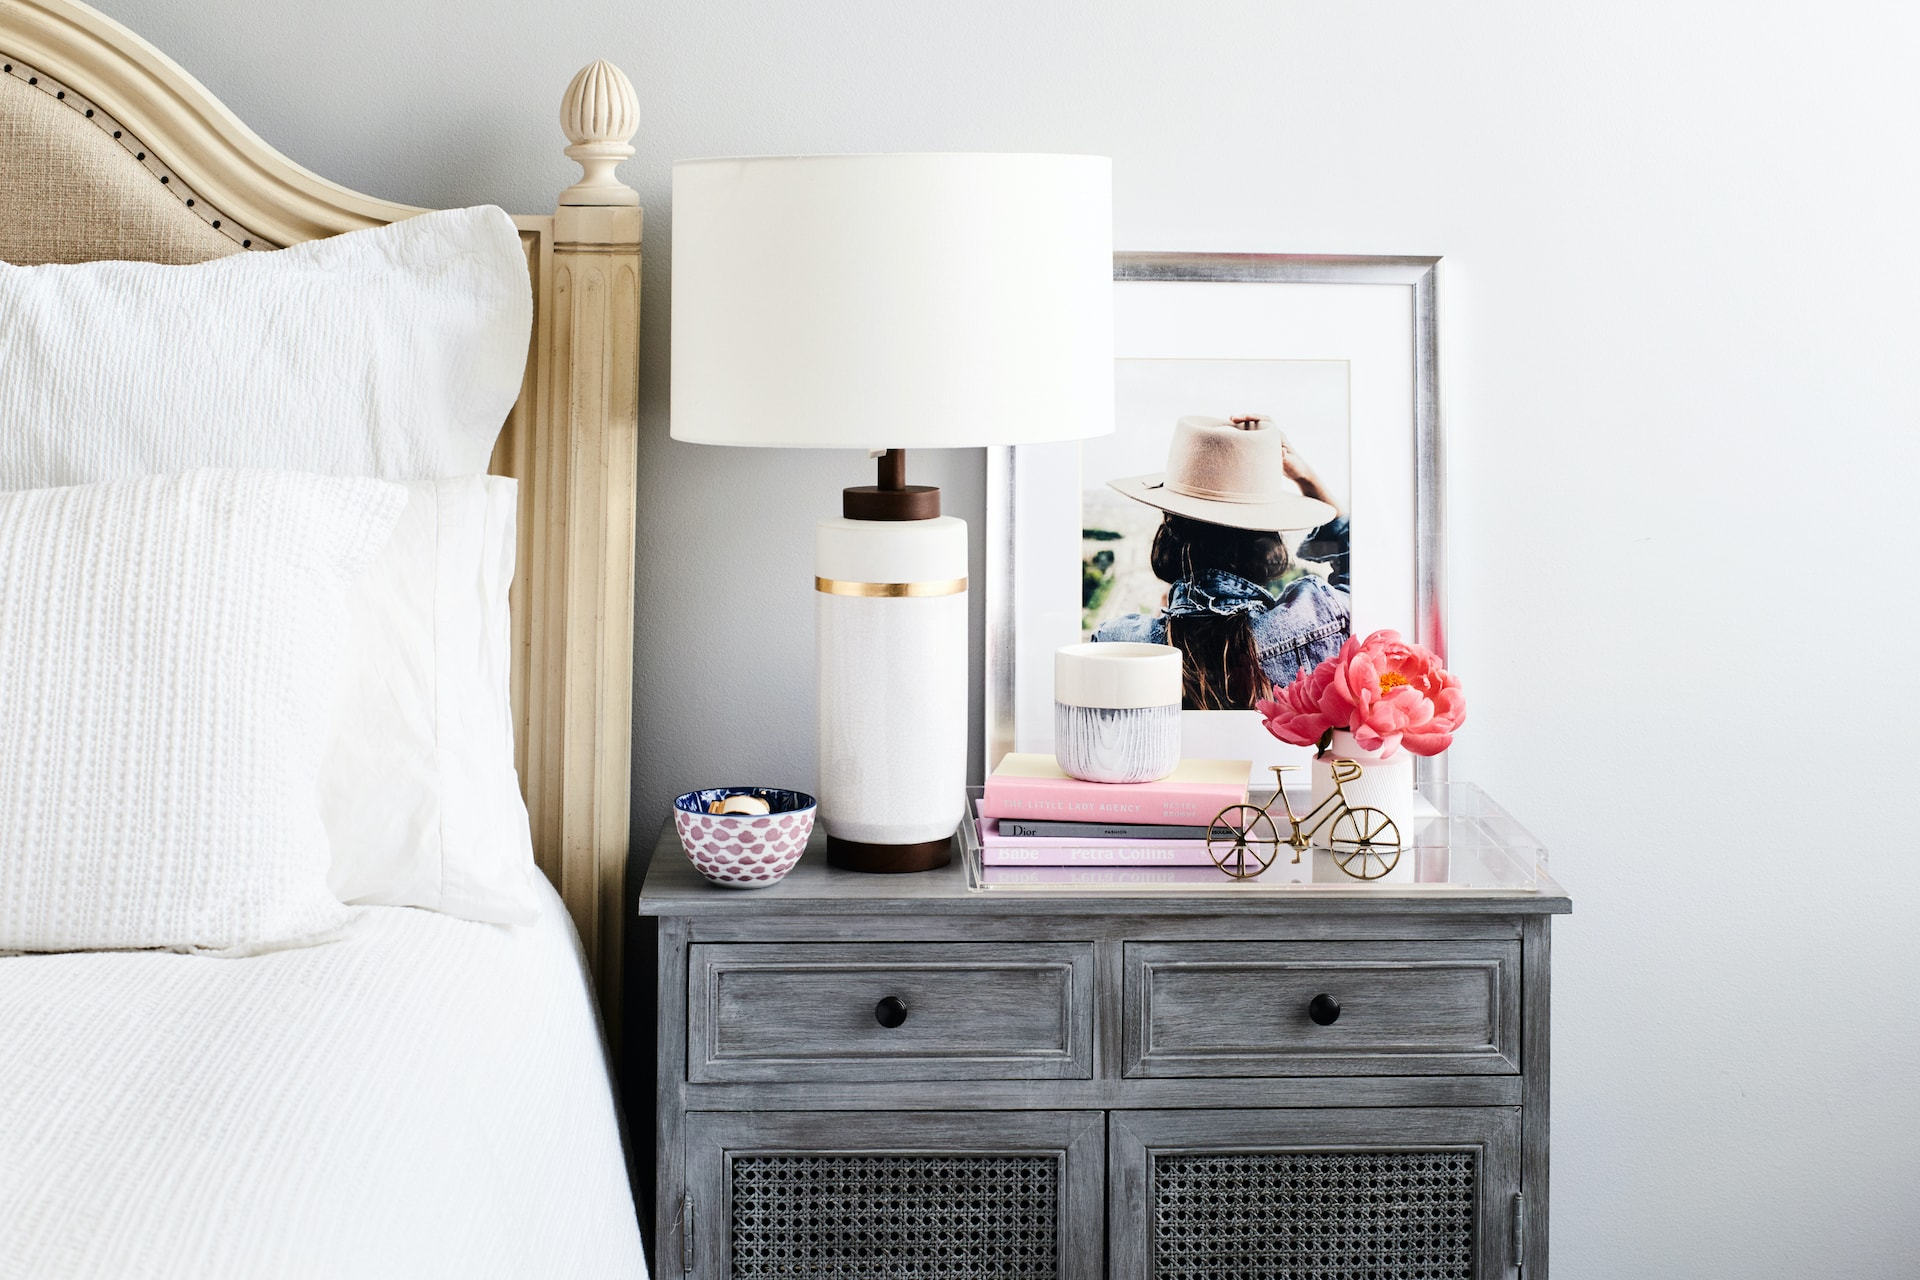 personalised bedside table styling with lamp photo frame and candle